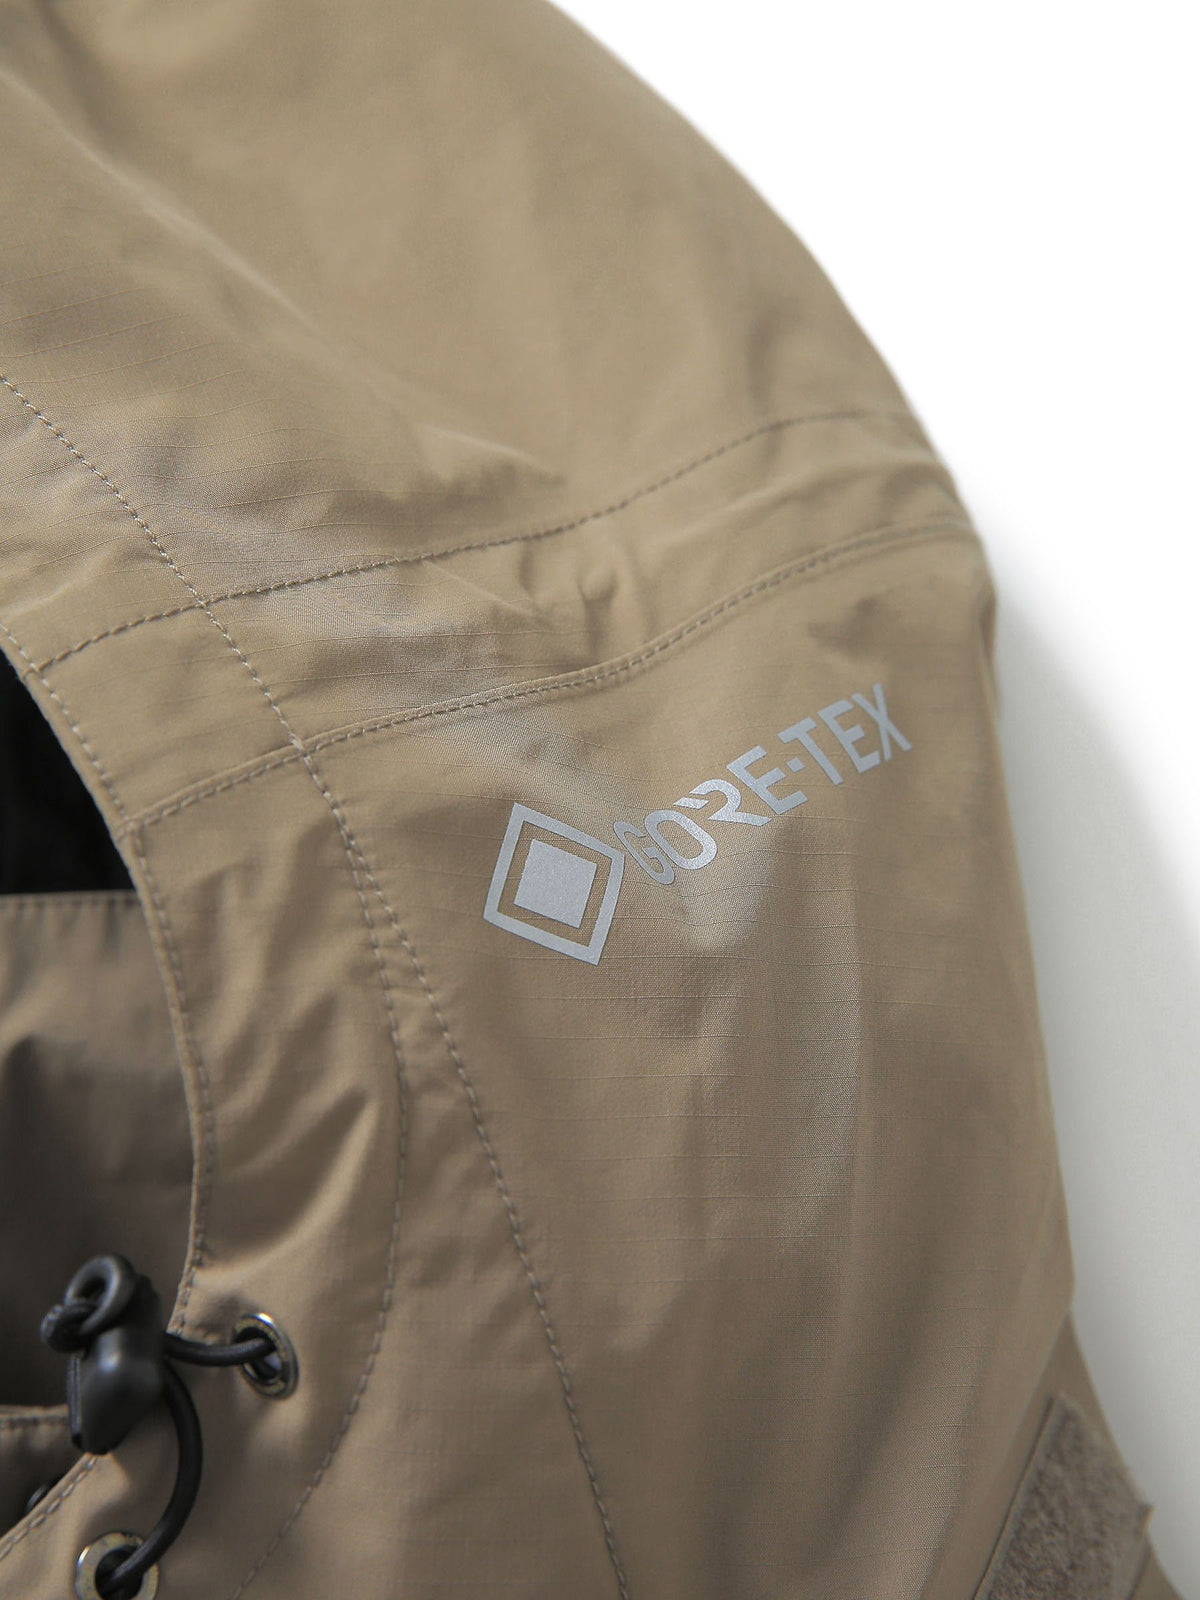 GORE-TEX Sport Jacket - thisisneverthat